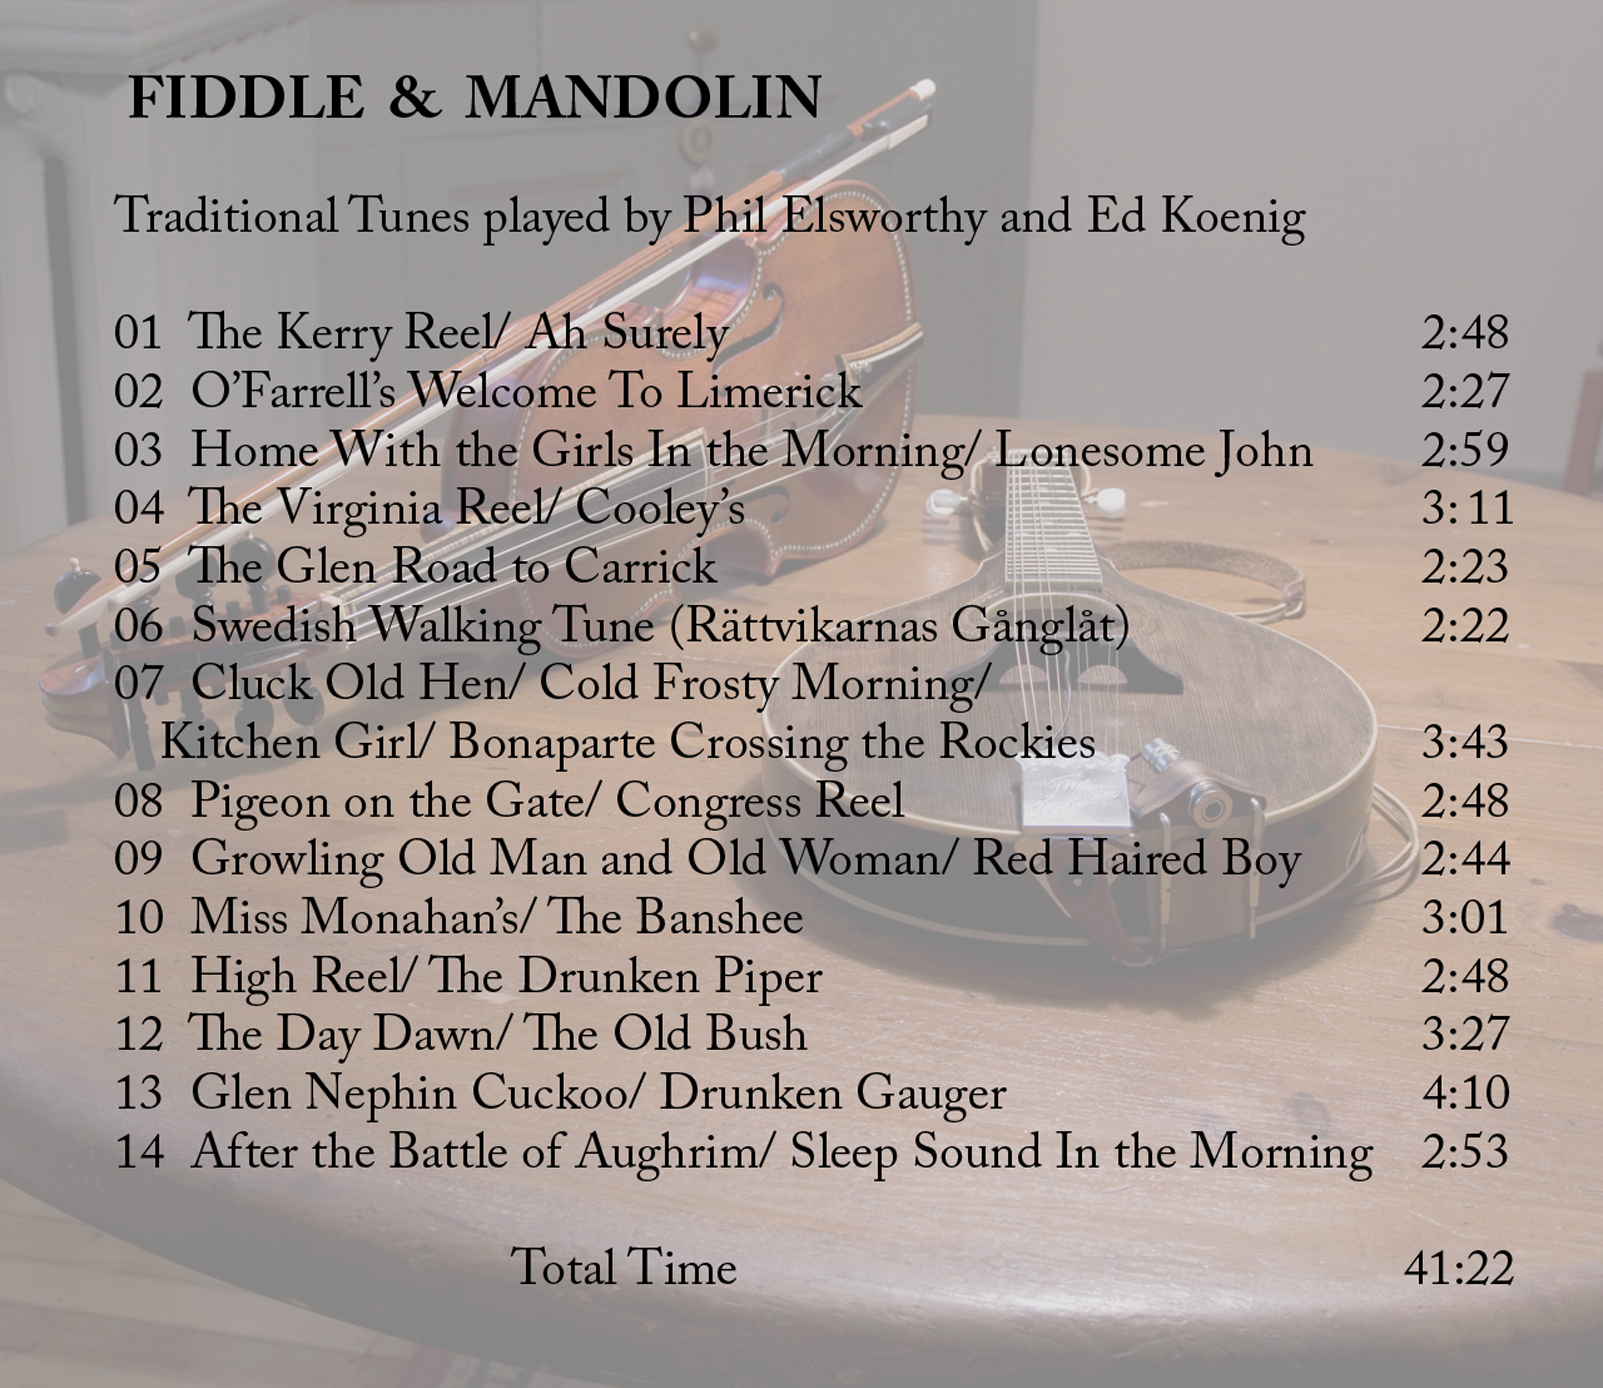 fiddle and mandolin back cover with text